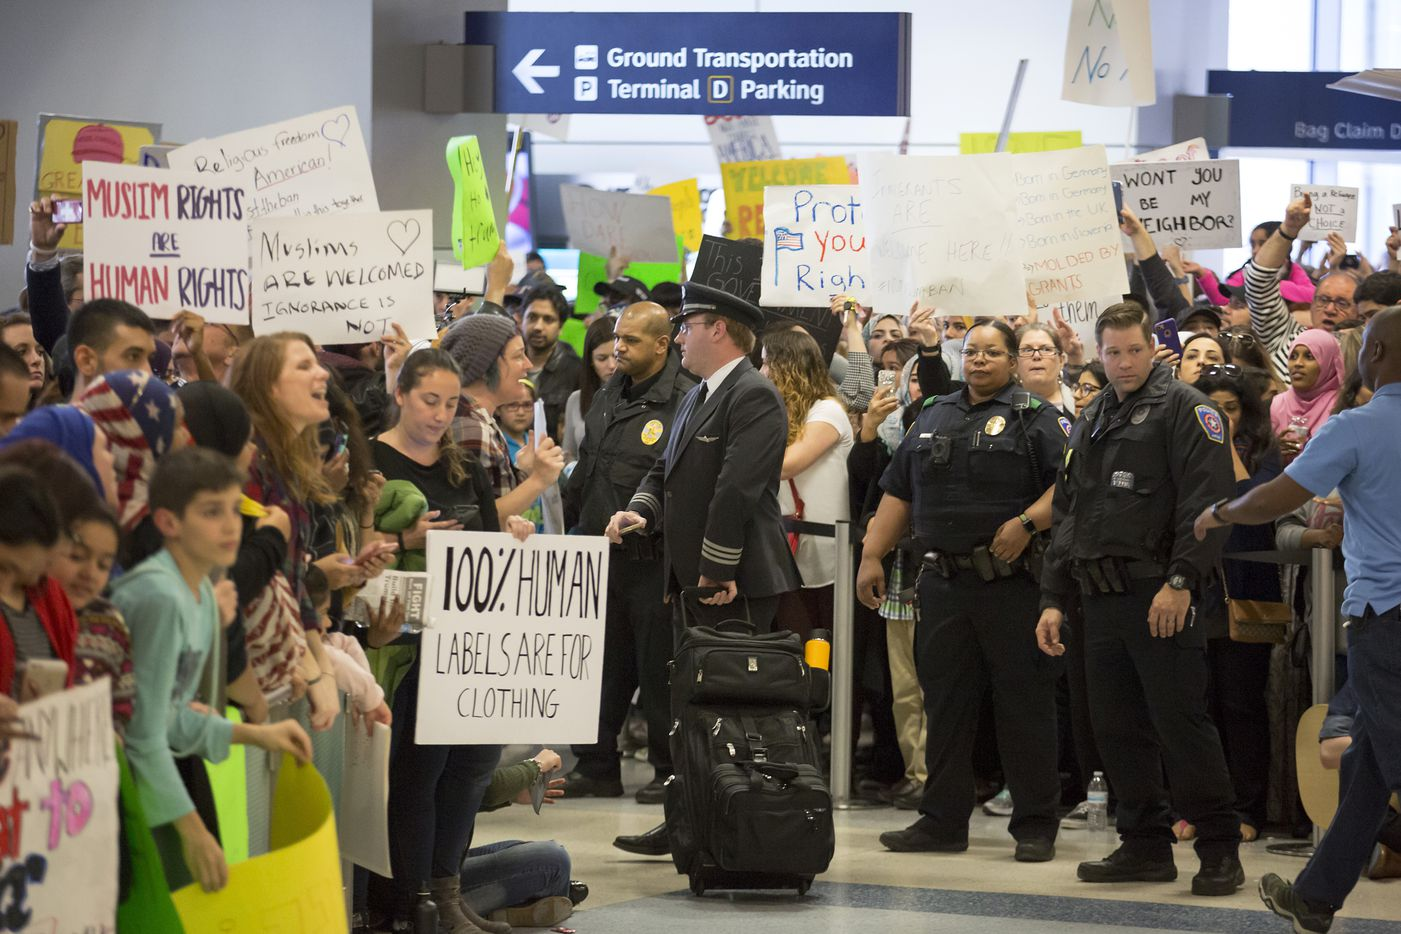 Police keep a walkway clear in the international arrivals hall at DFW International Airport as protestors fill the hall in opposition to President Donald Trump's executive order barring certain immigrants on Sunday, Jan. 29, 2017.